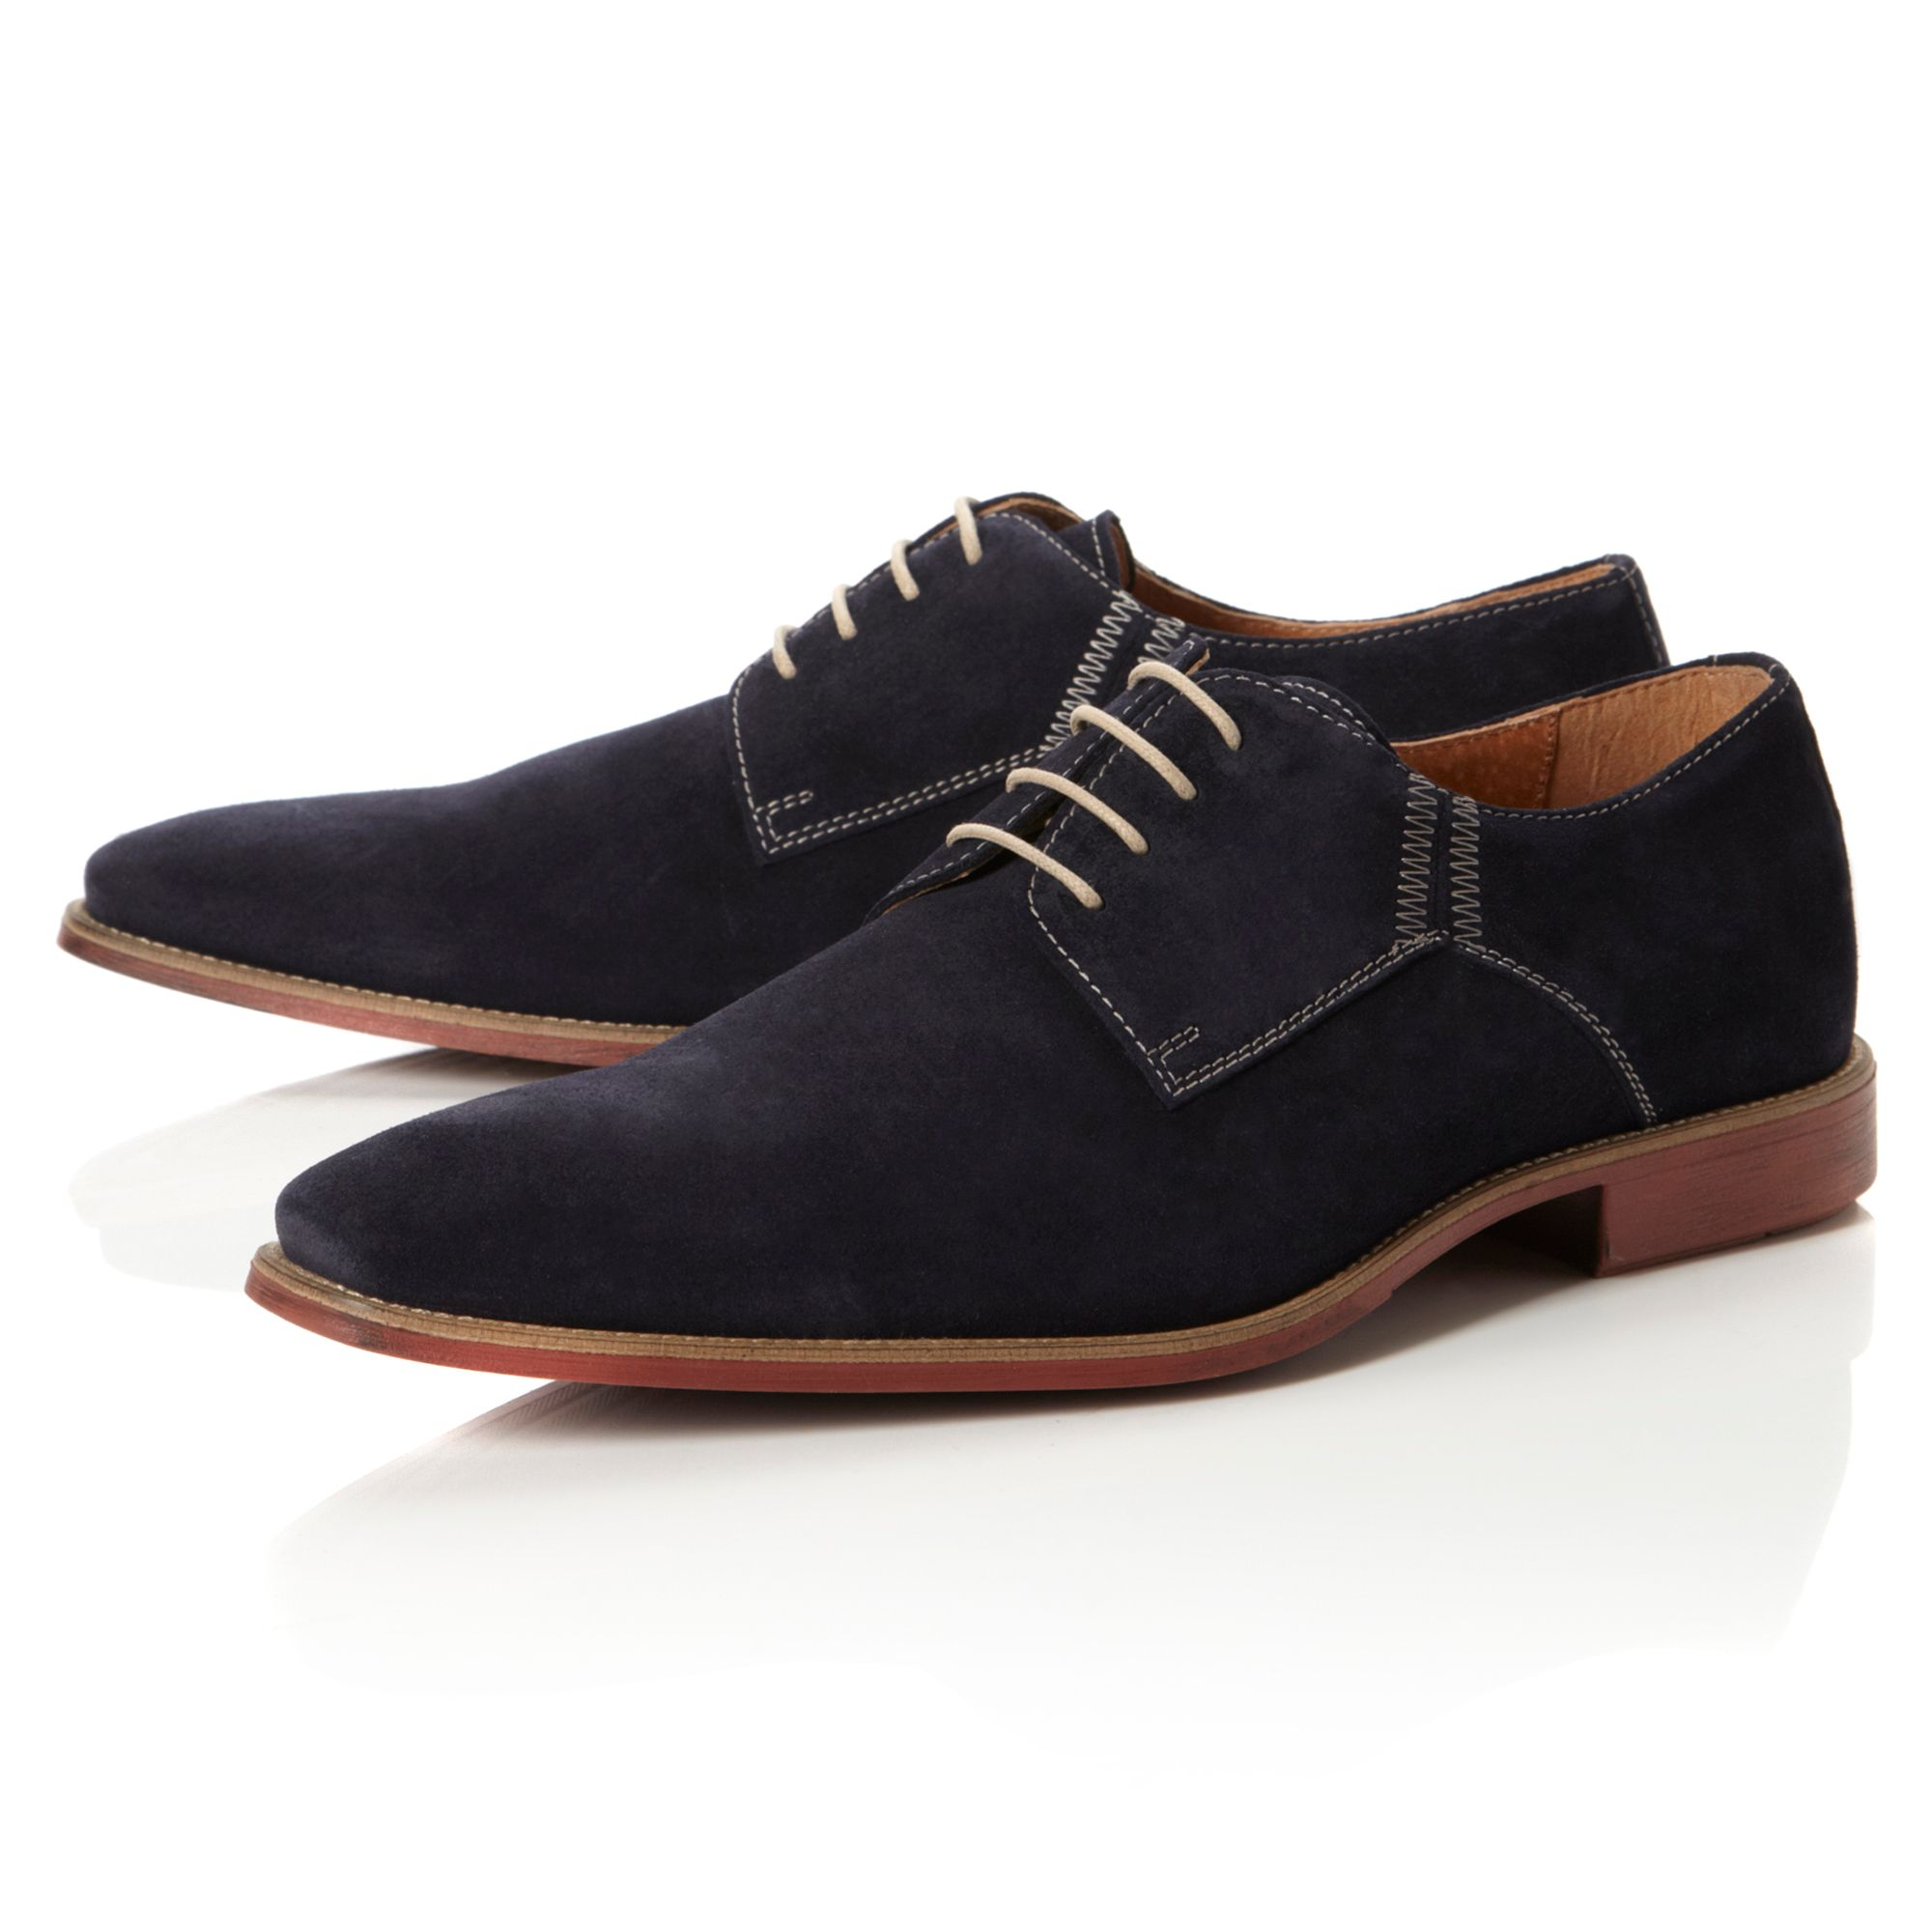 Belgravia contrast stitch chisel shoes